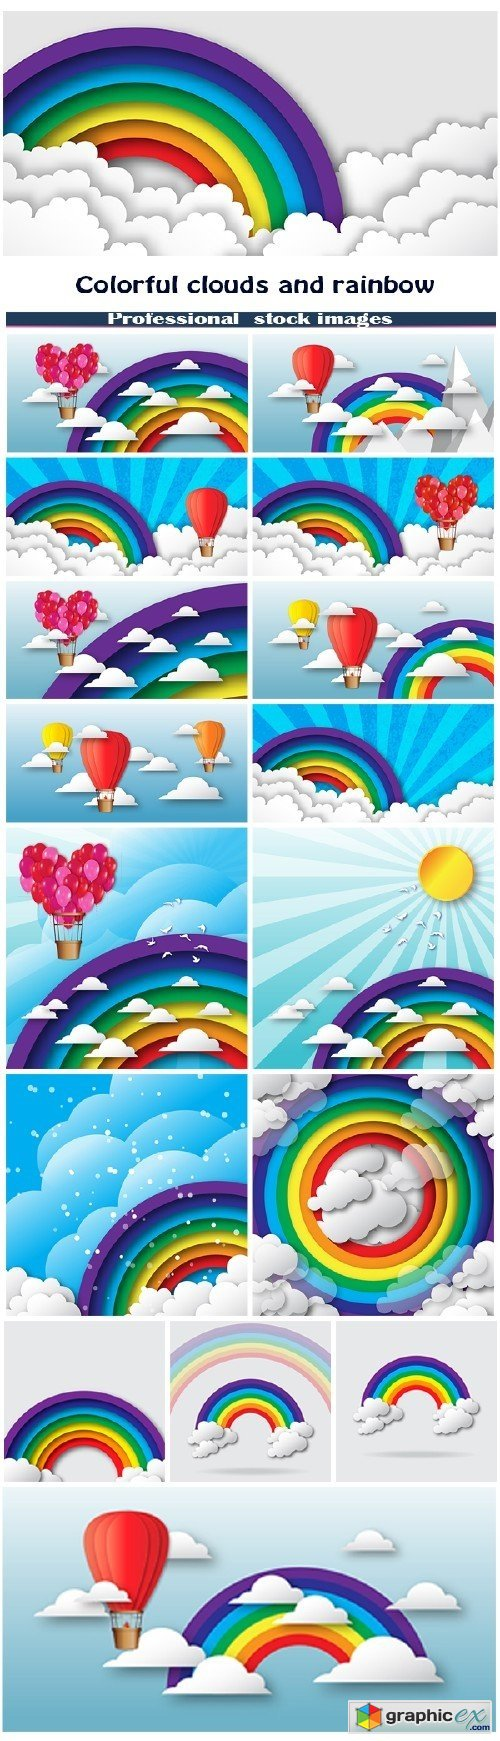 Origami stylized paper colorful clouds and rainbow with blue sky